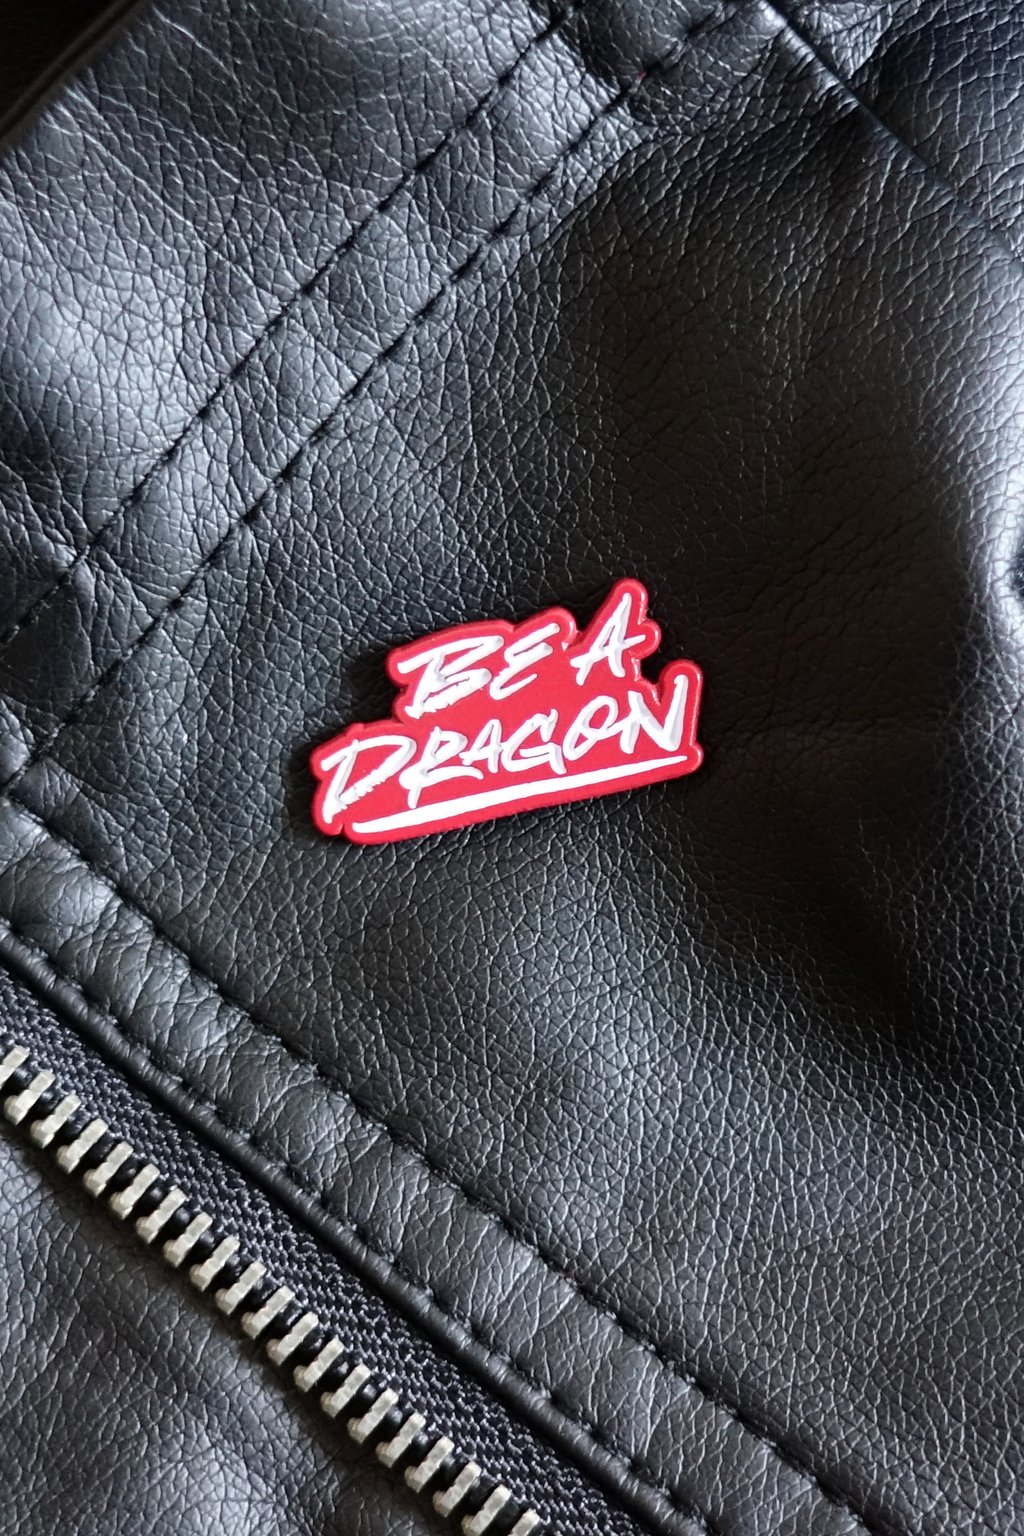 Be a Dragon Enamel Pin $10